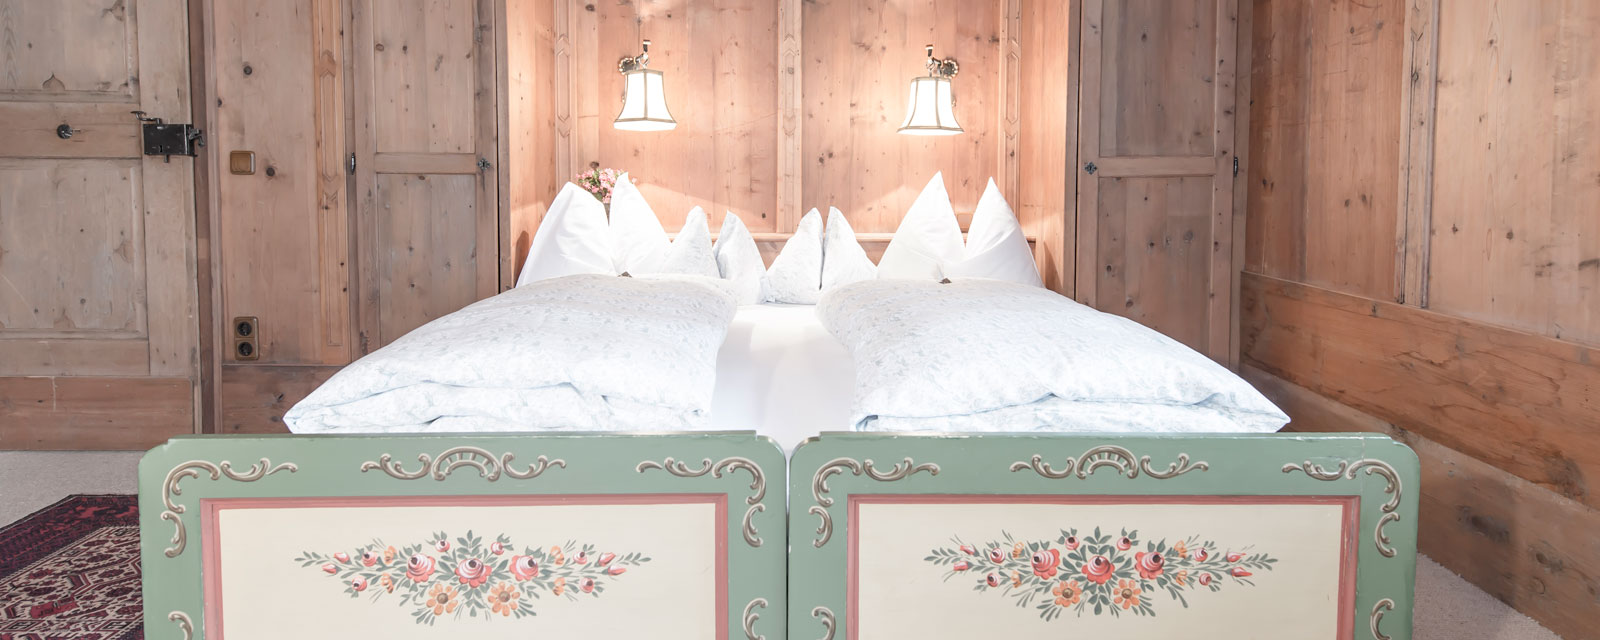 Doppelbett in traditioneller Tiroler Stube